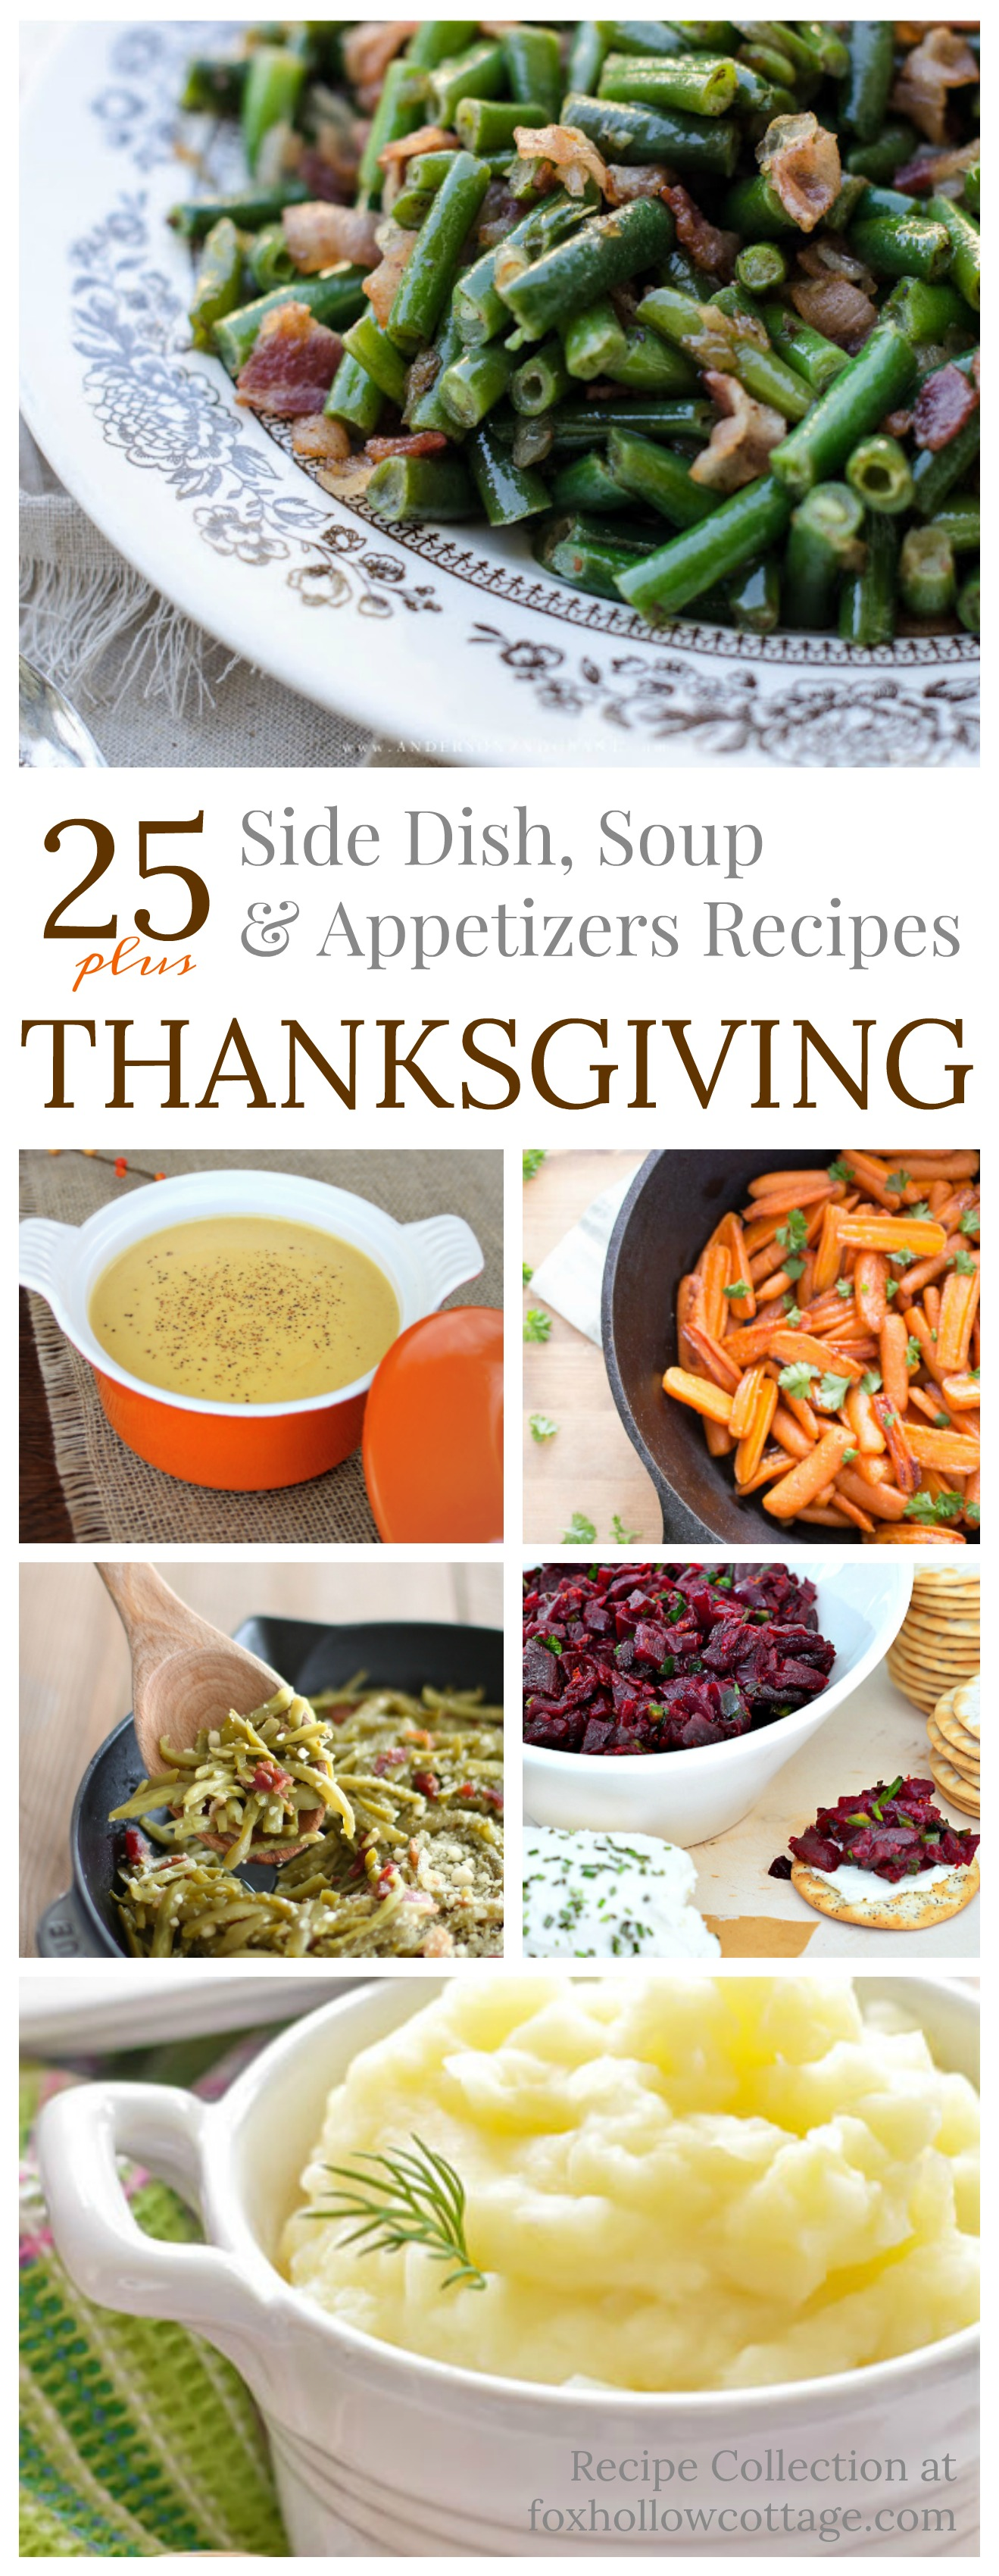 25+ side dish soup and appetizers recipes perfect for Fall, Thanksgiving and your holiday table - Menu at foxhollowcottage.com